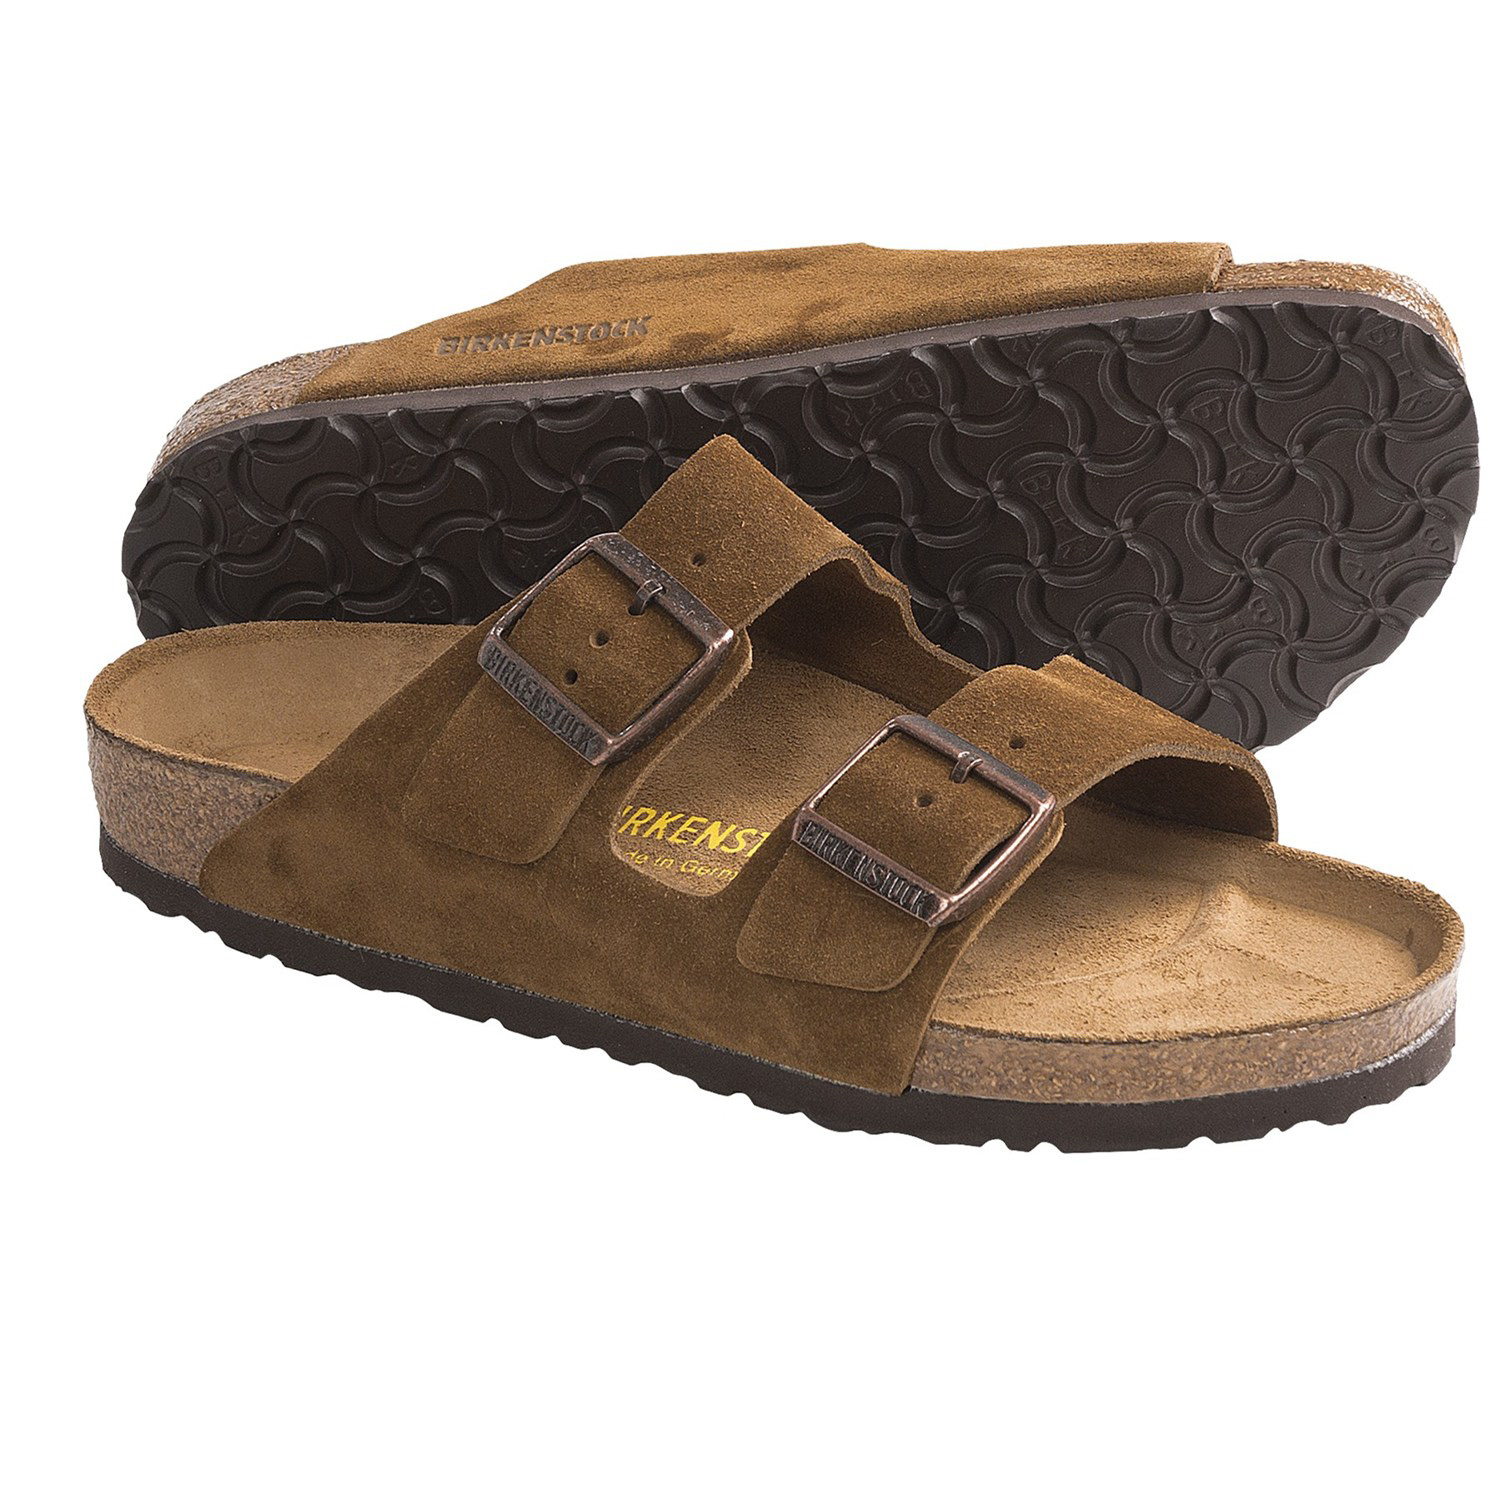 Rebuild your Birks, Mephistos and save money along with the environment.